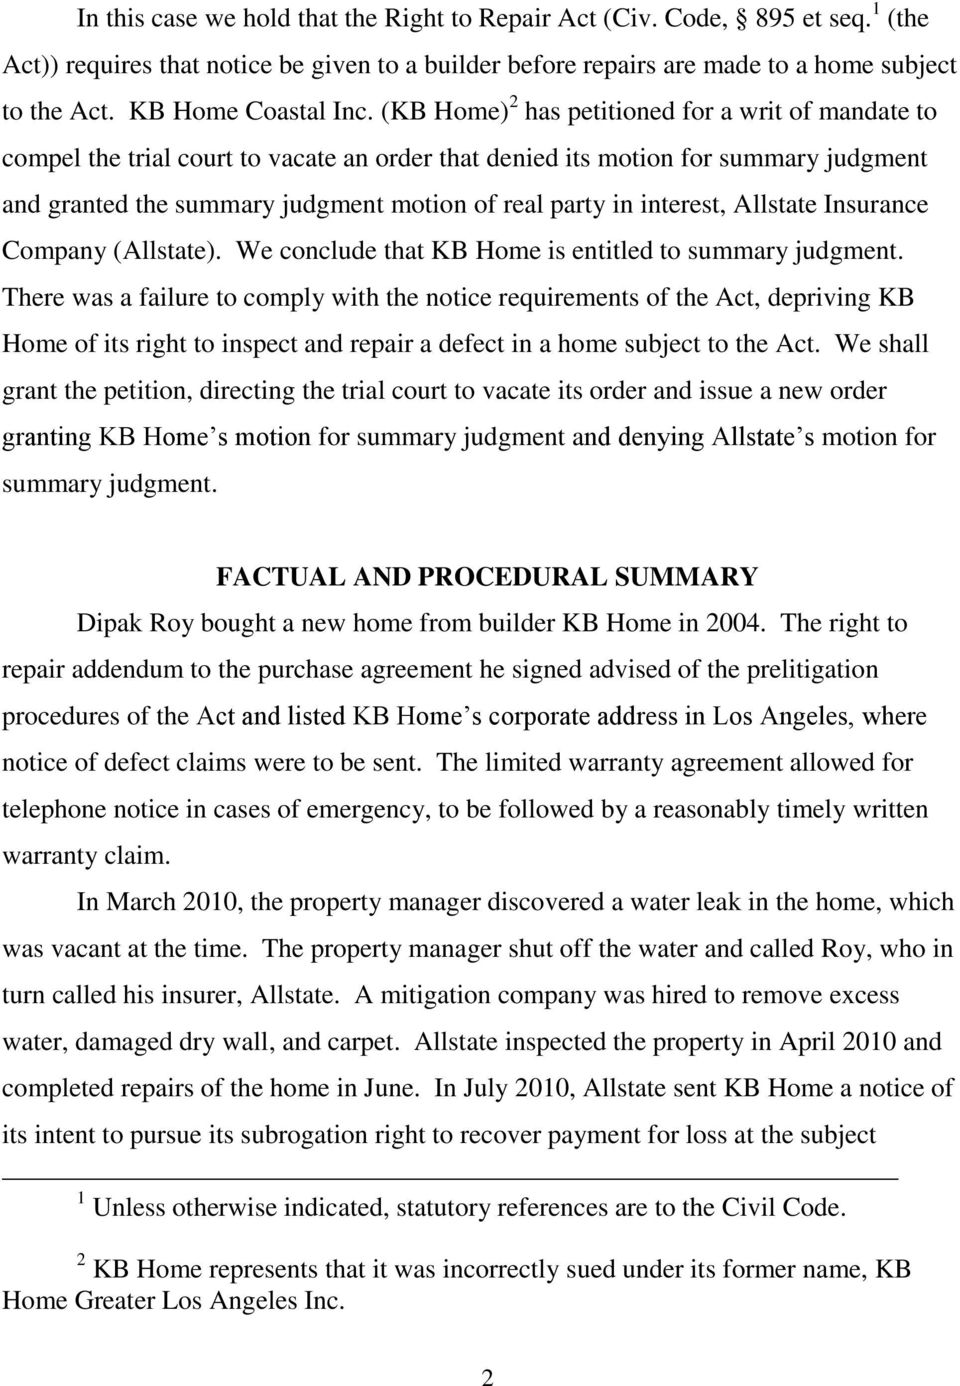 (KB Home) 2 has petitioned for a writ of mandate to compel the trial court to vacate an order that denied its motion for summary judgment and granted the summary judgment motion of real party in